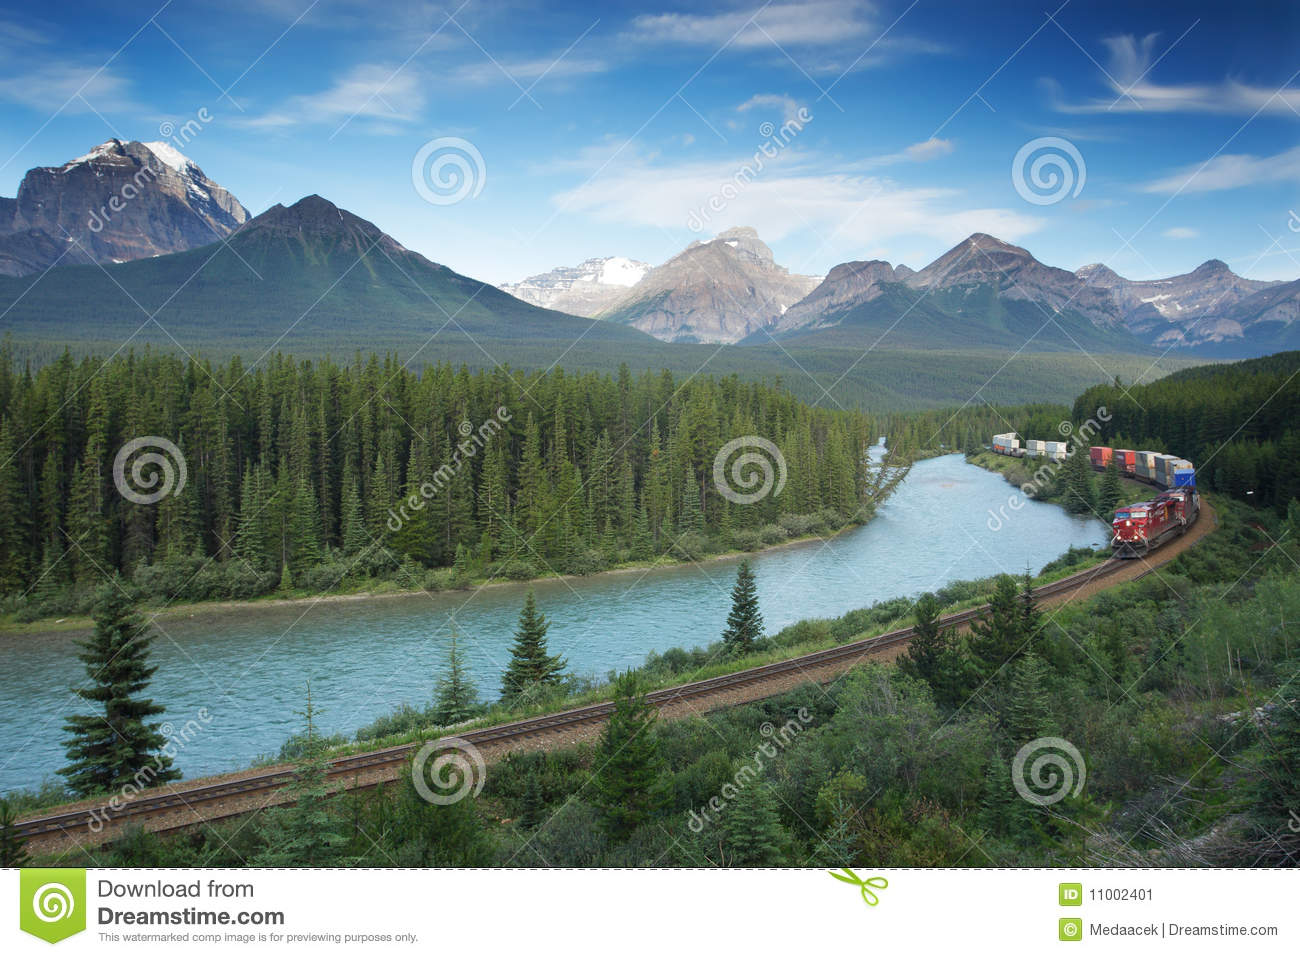 Railway With Train In Banff National Park, Canada Stock Image - Image ...